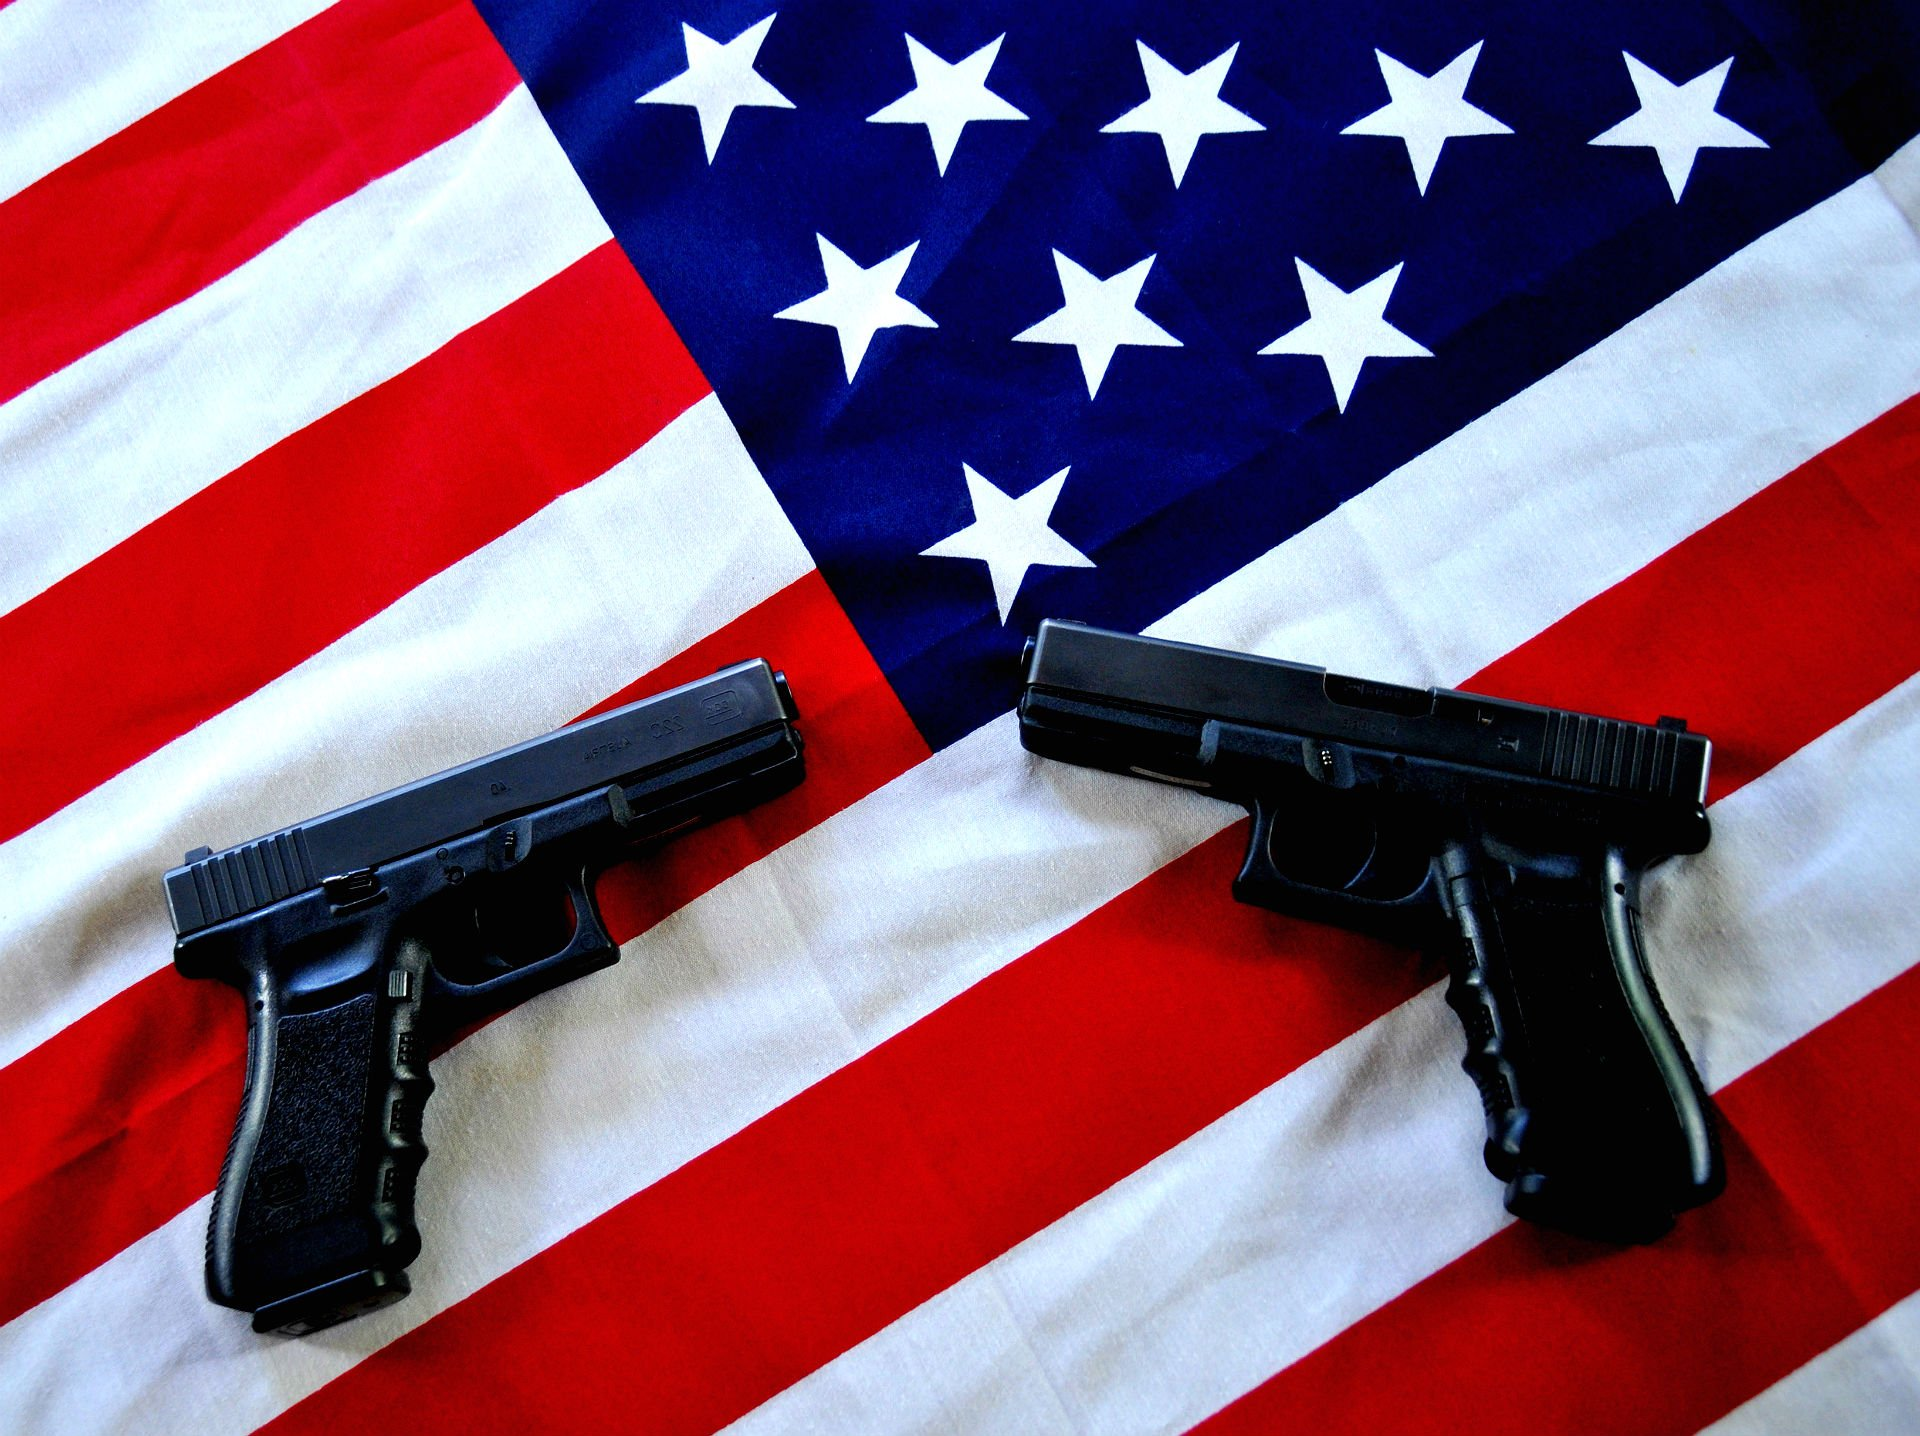 protest political weapons guns pistol usa flag wallpaper backgroundEagle American Flag Guns